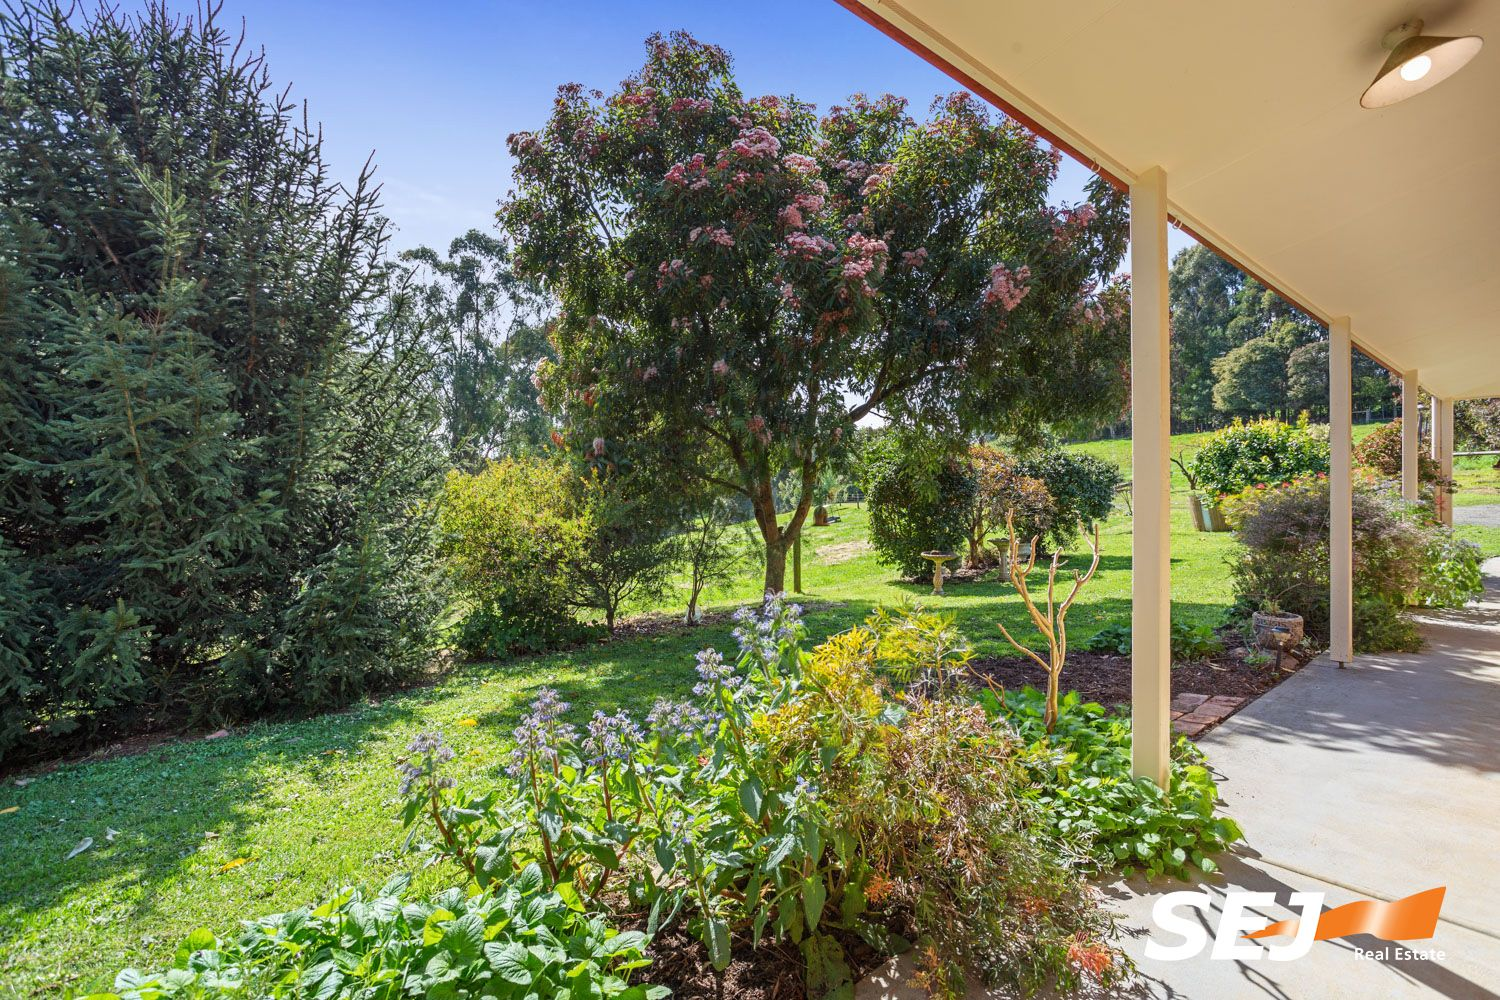 2614 Meeniyan-Mirboo North Road, Mirboo North VIC 3871, Image 2